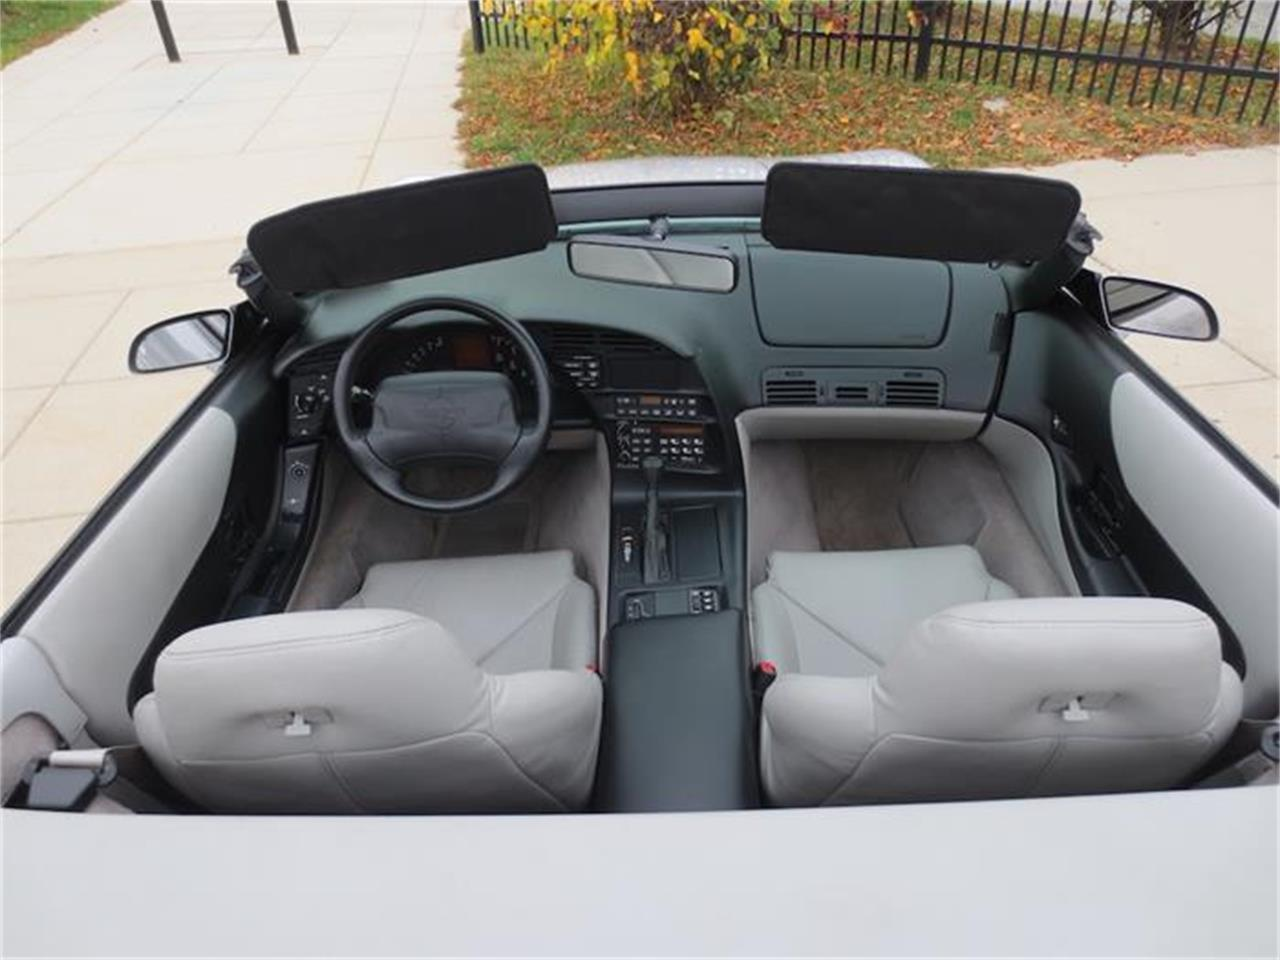 Large Picture of '96 Chevrolet Corvette located in Lawrenceville New Jersey - $25,900.00 - G17I